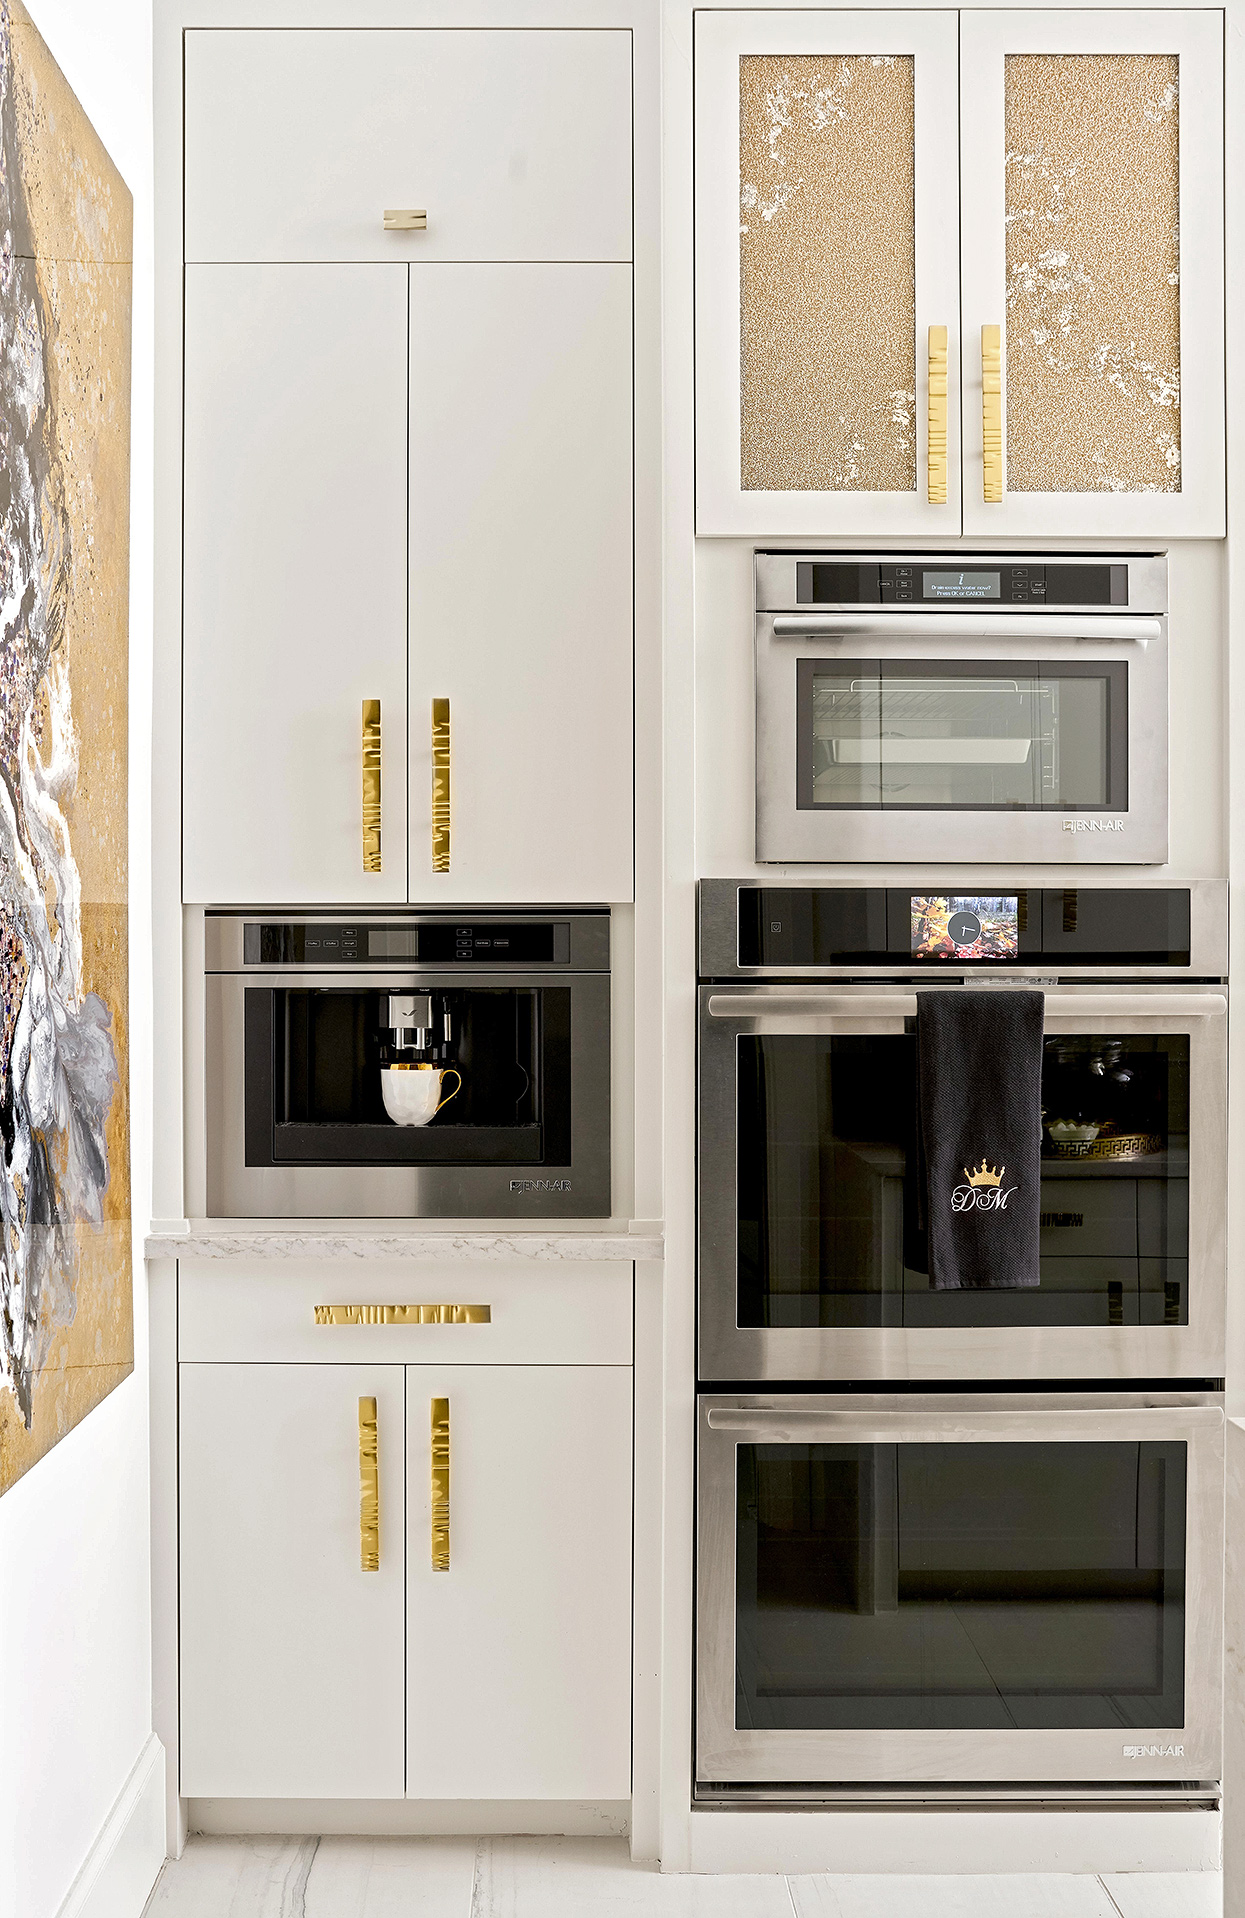 sleek white kitchen with modern appliances and gold details